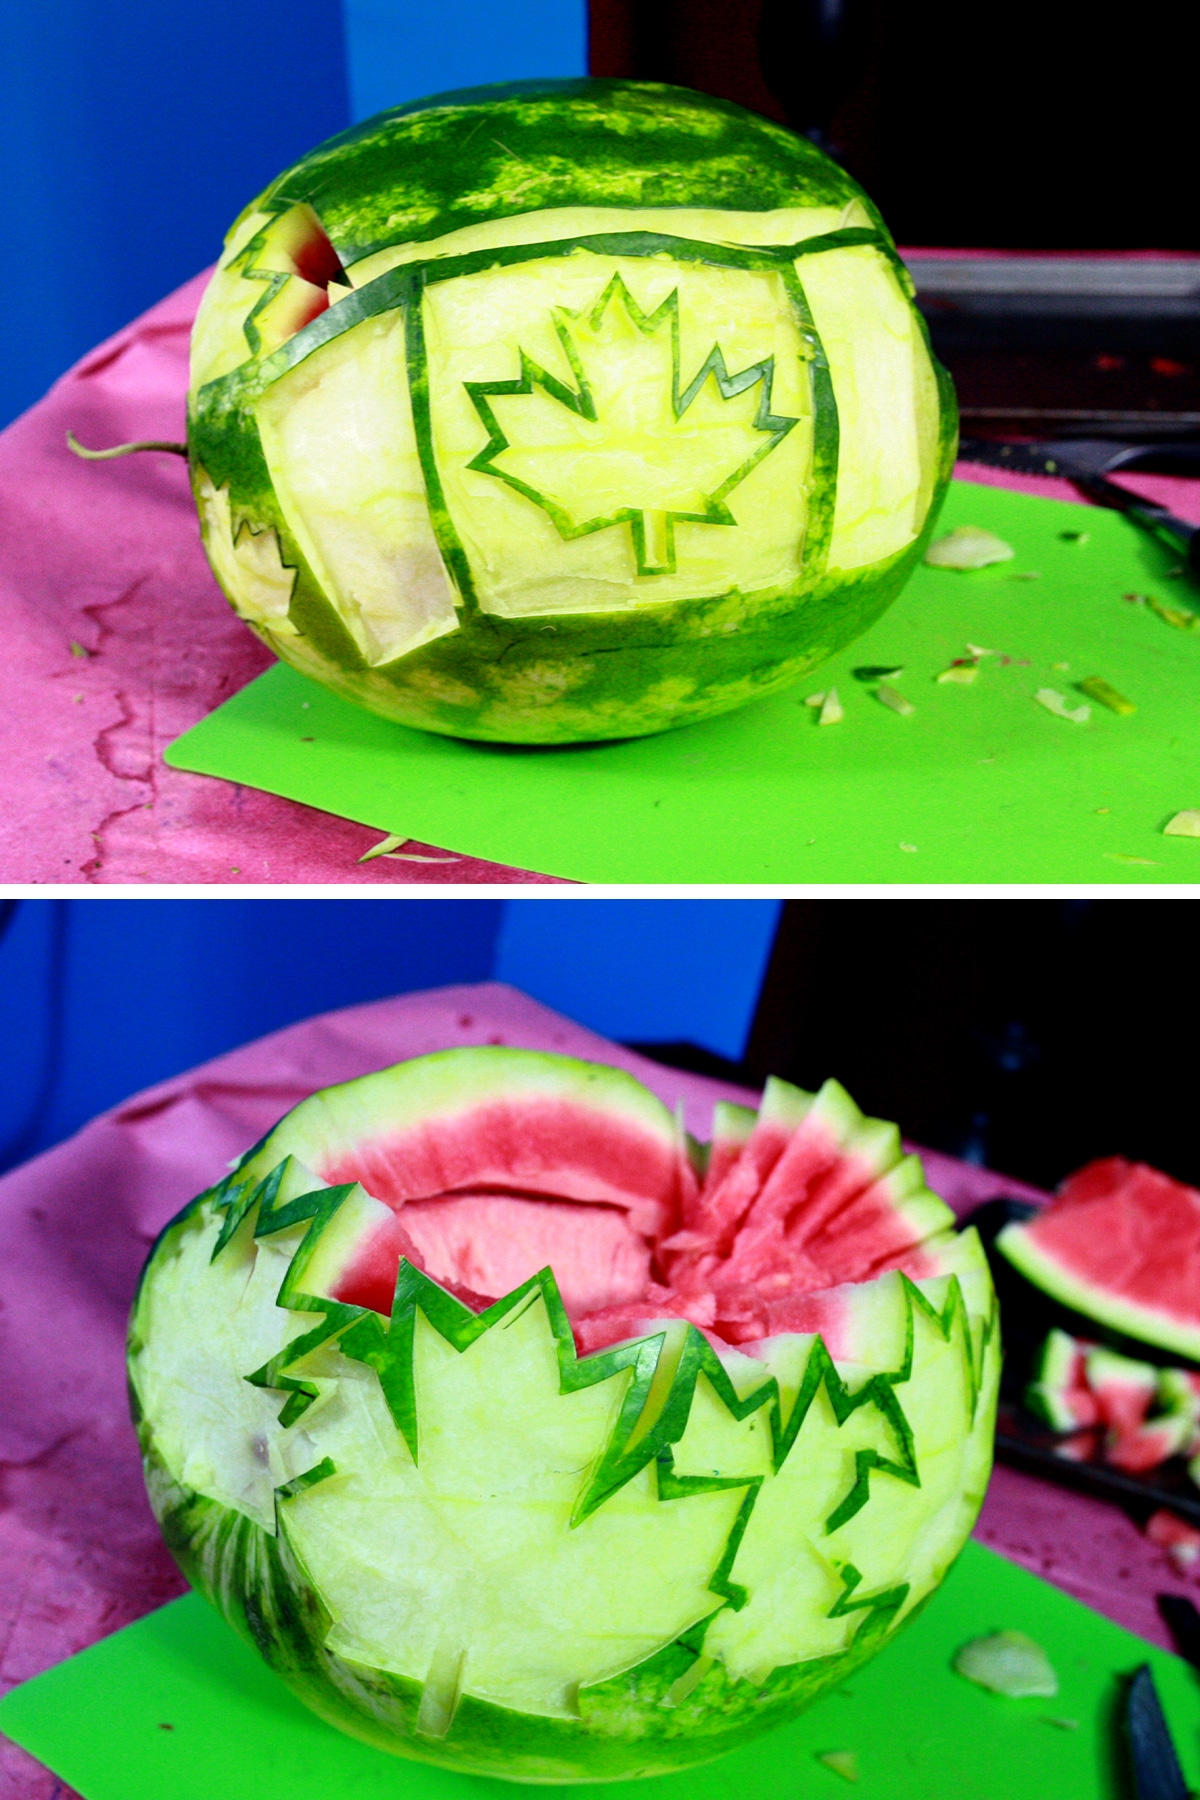 A two part image showing the top section of the watermelon being cut off.